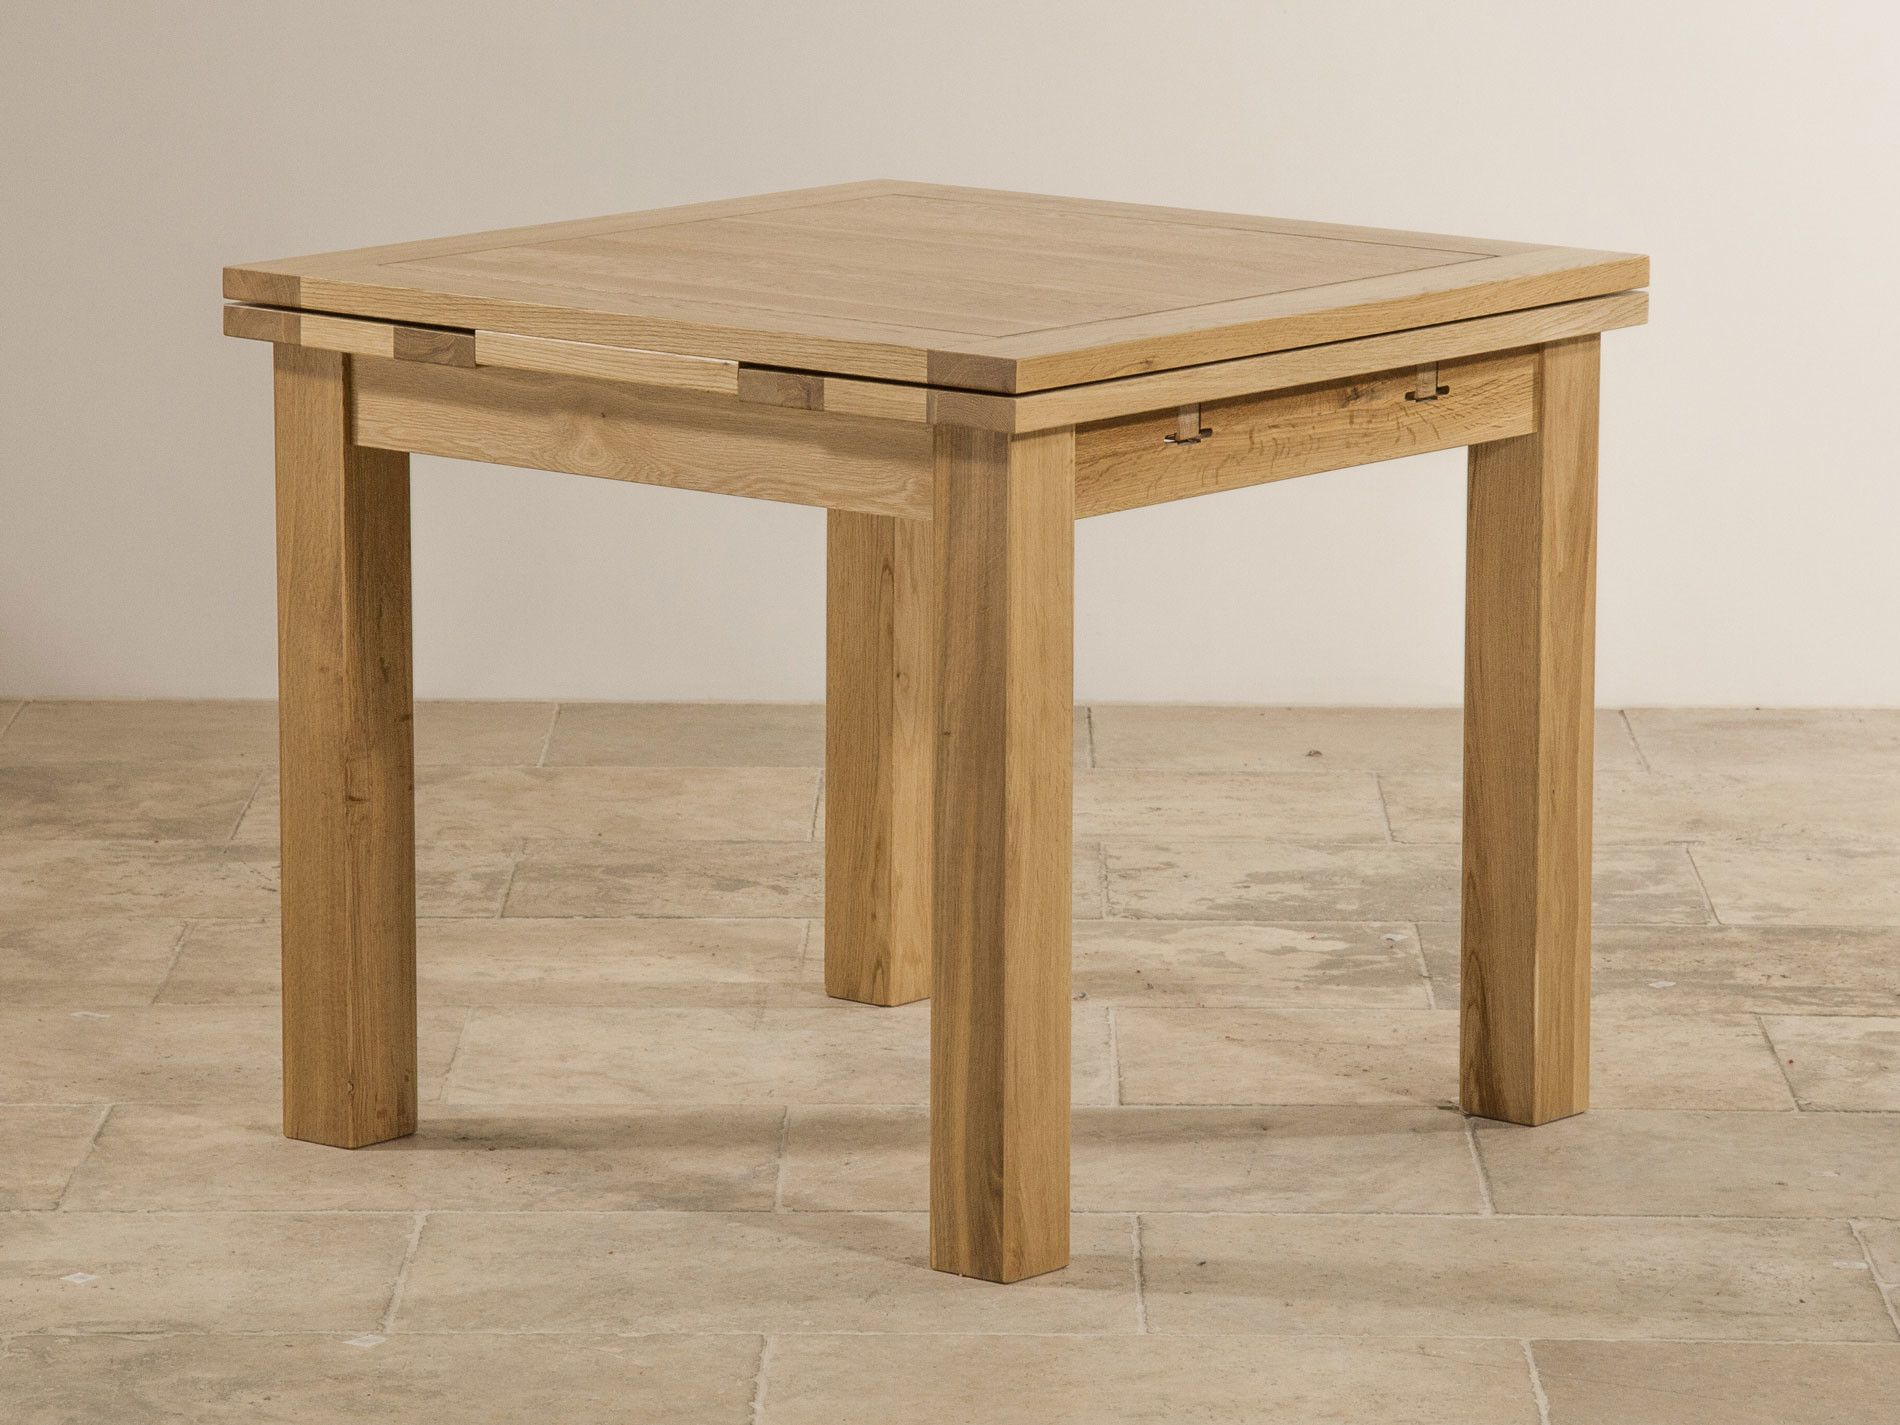 dorset 3ft x 3ft natural oak extending dining table (seats up to 6